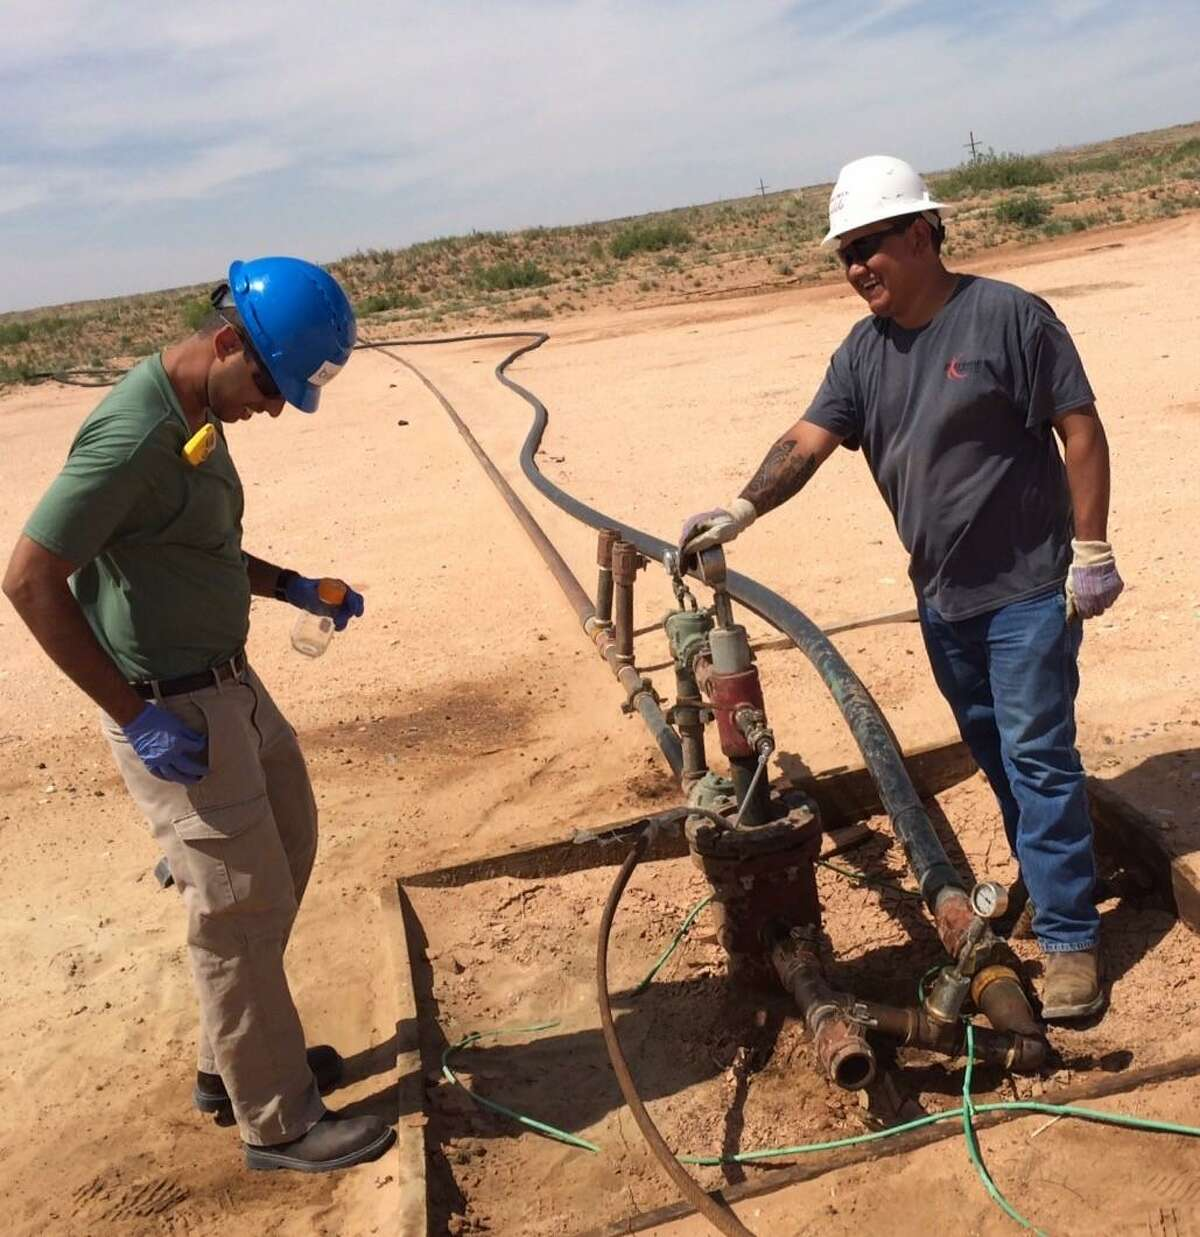 Biota, a California startup, is developing a means of improving oil and gas operations by analyzing the bacteria that emerge from the wellhead.